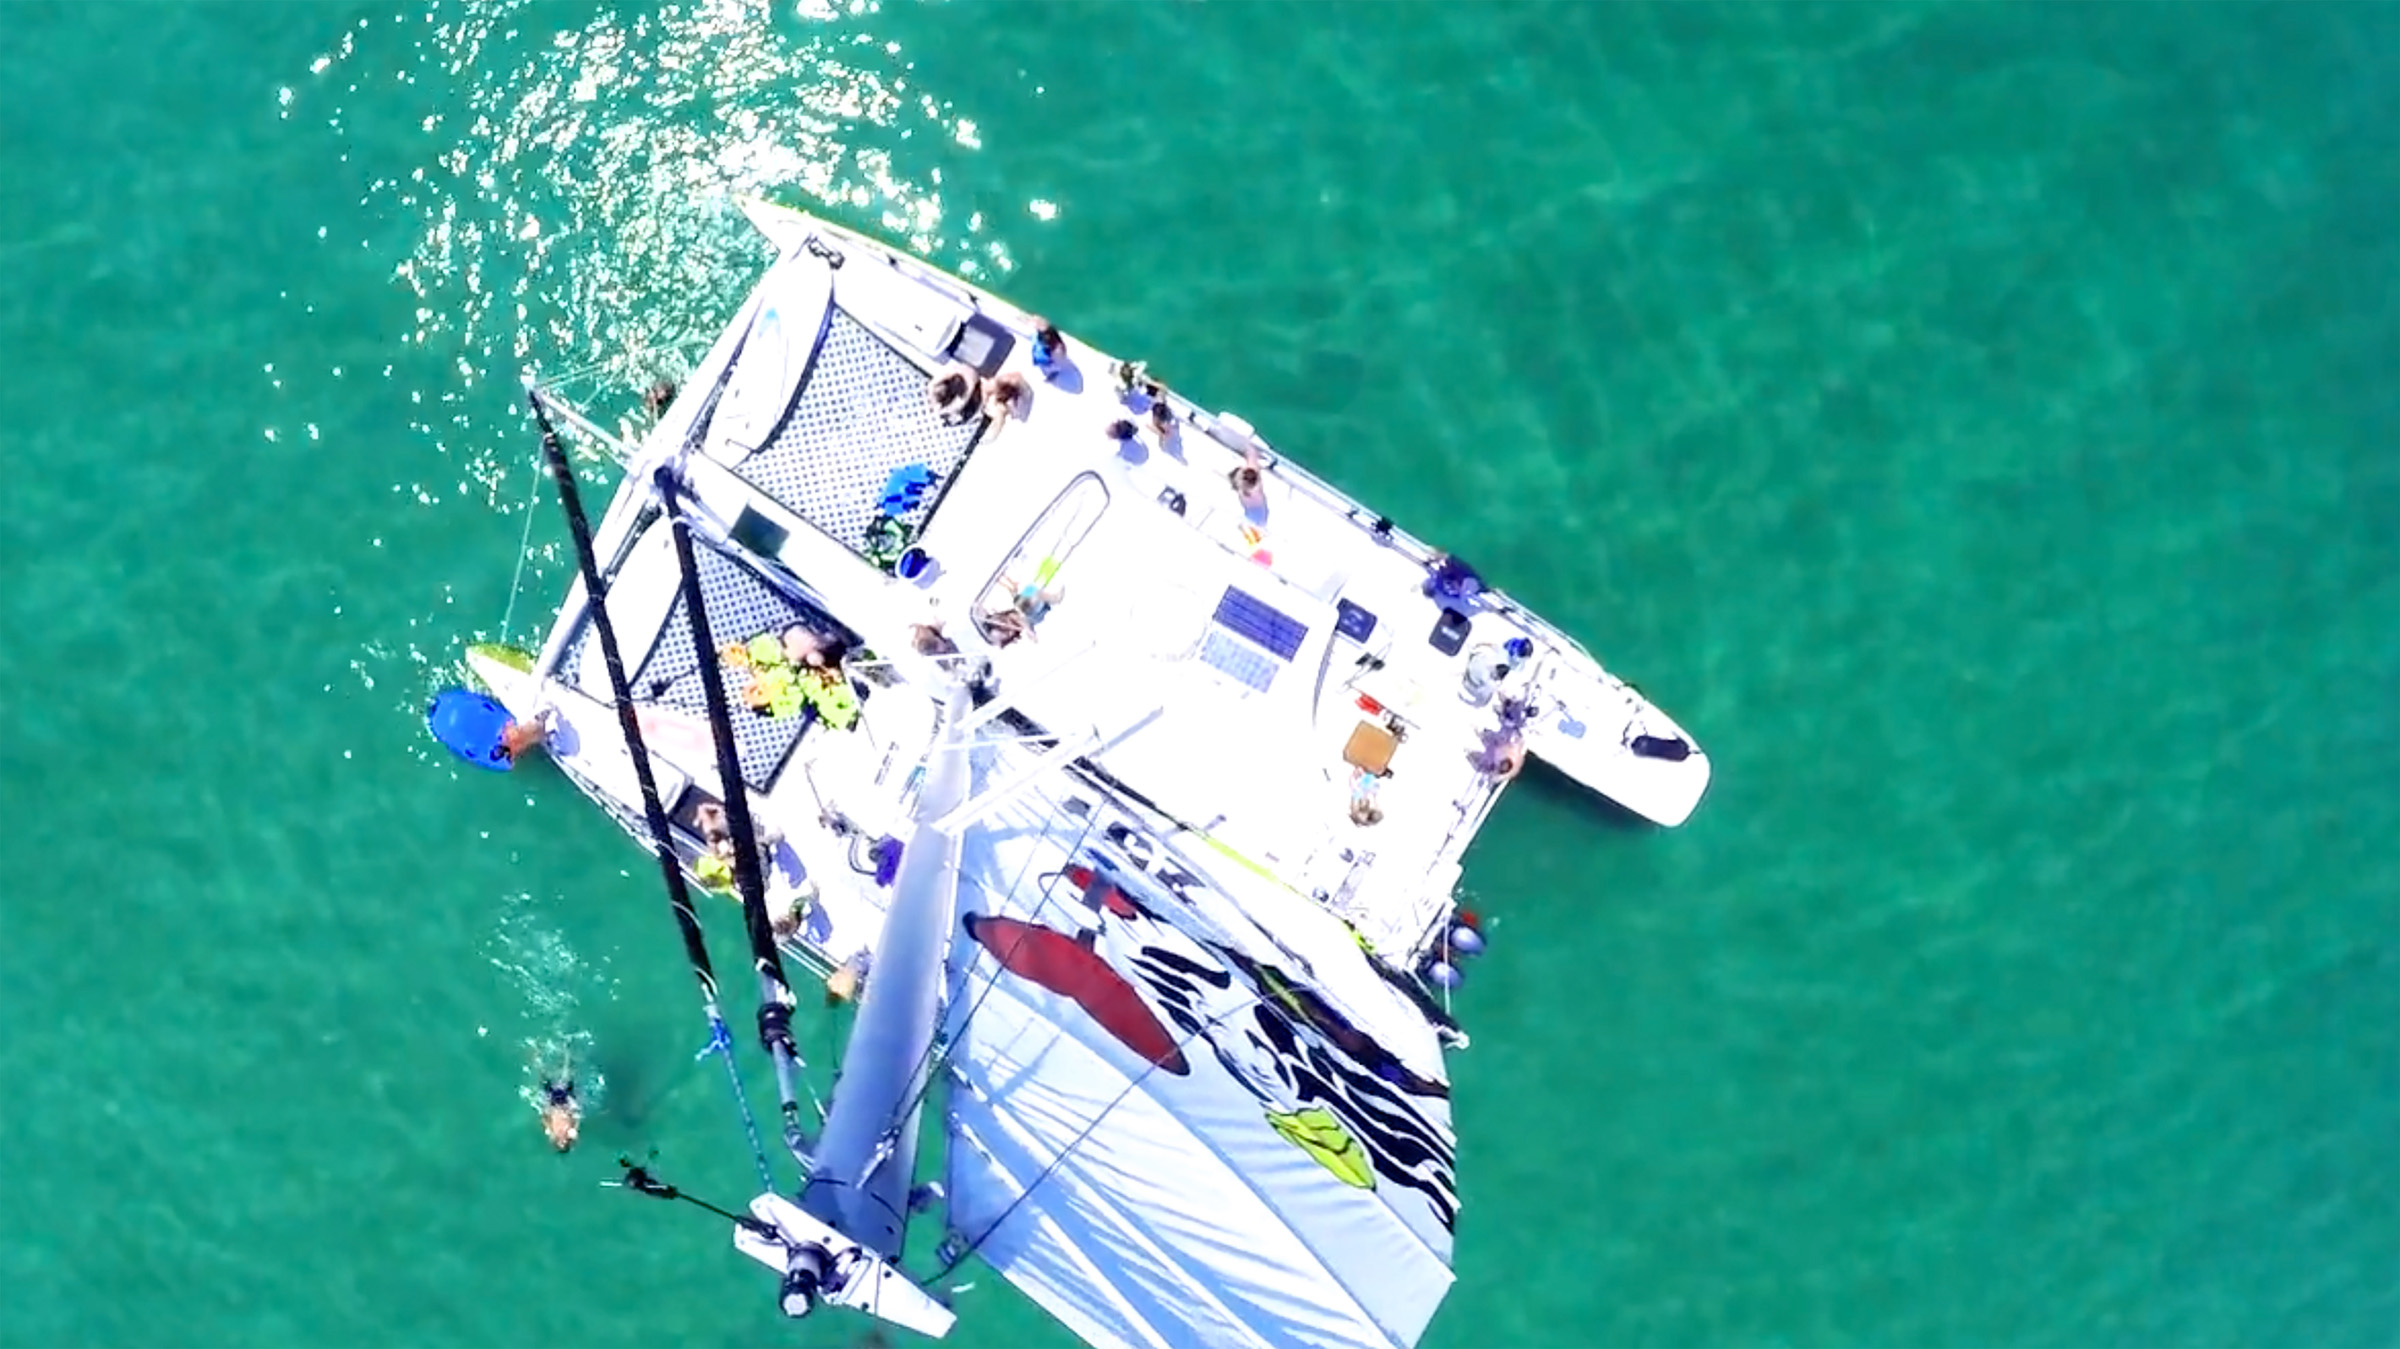 aerial view of catamaran